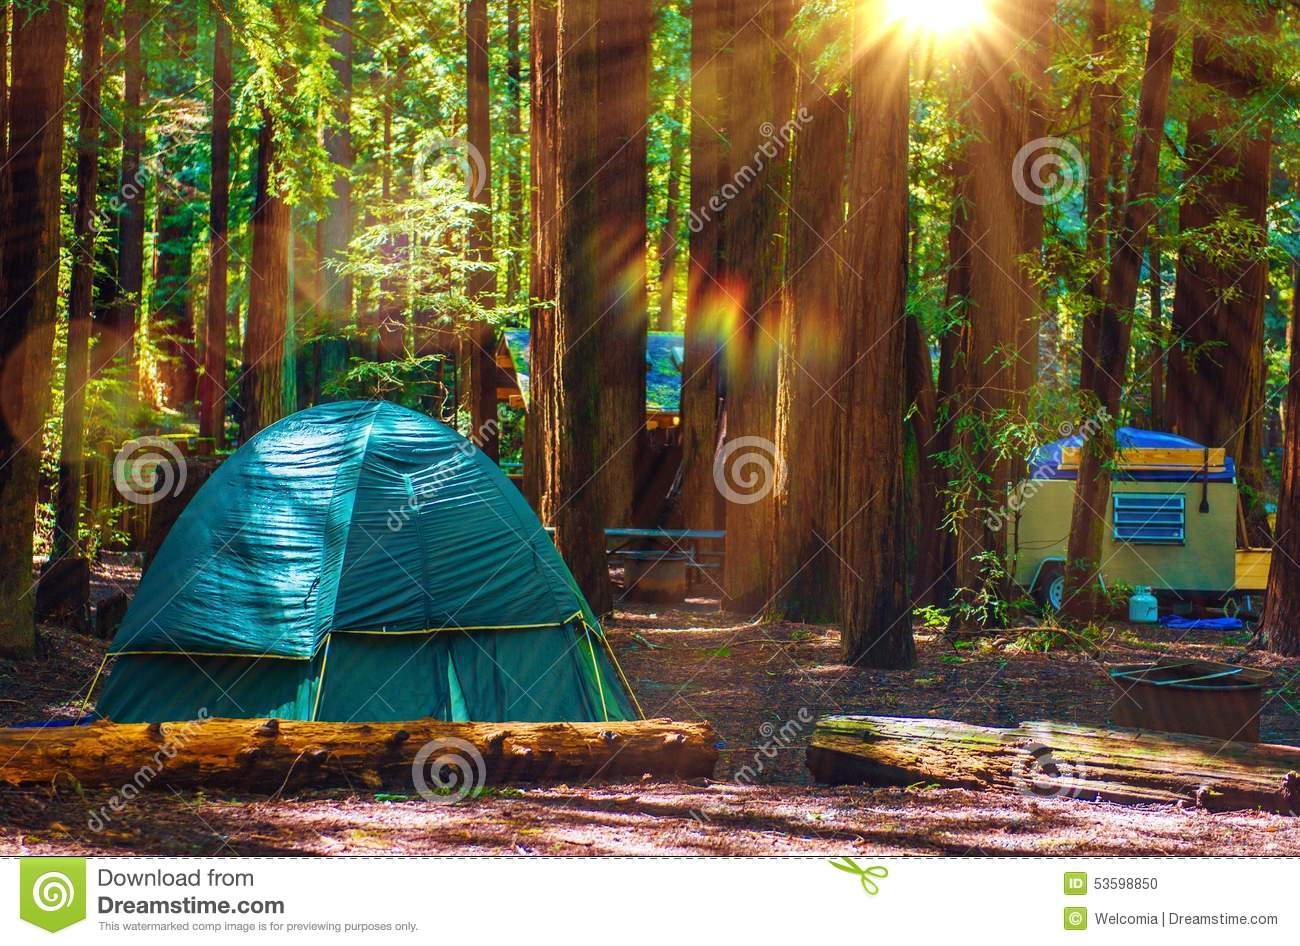 Tent Camping in Redwoods